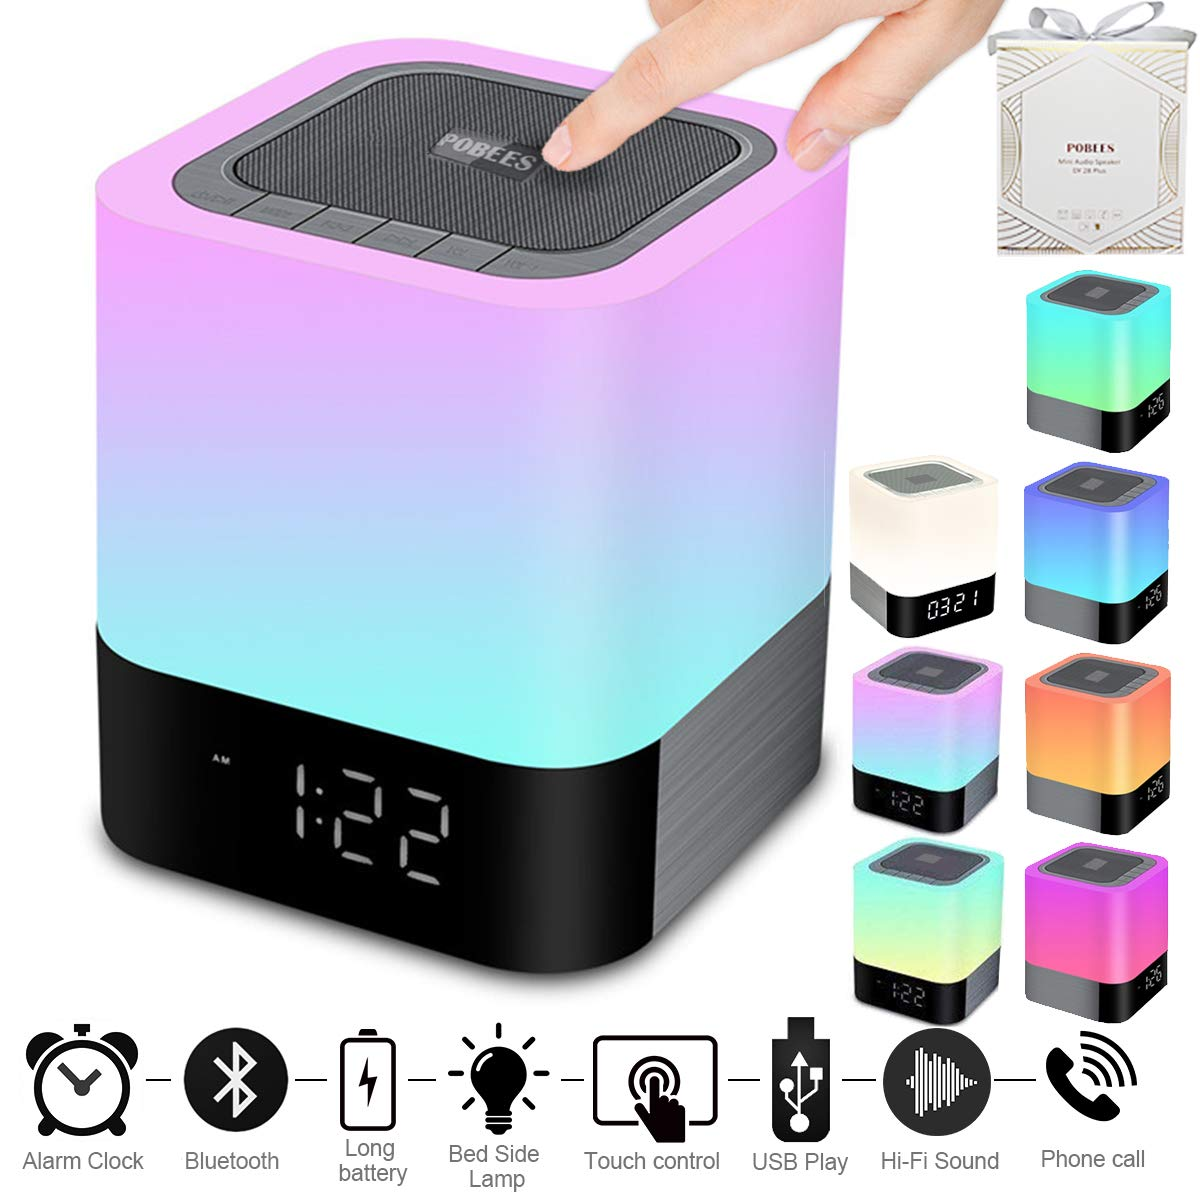 Portable Wireless Bluetooth 4.0 Speaker (Newest Version) - Big Sound Heavy Base, 48 Led Changing Color,Dimmable Warm Light Night Lamp,Alarm Clock,Hand-Free Call,MP3